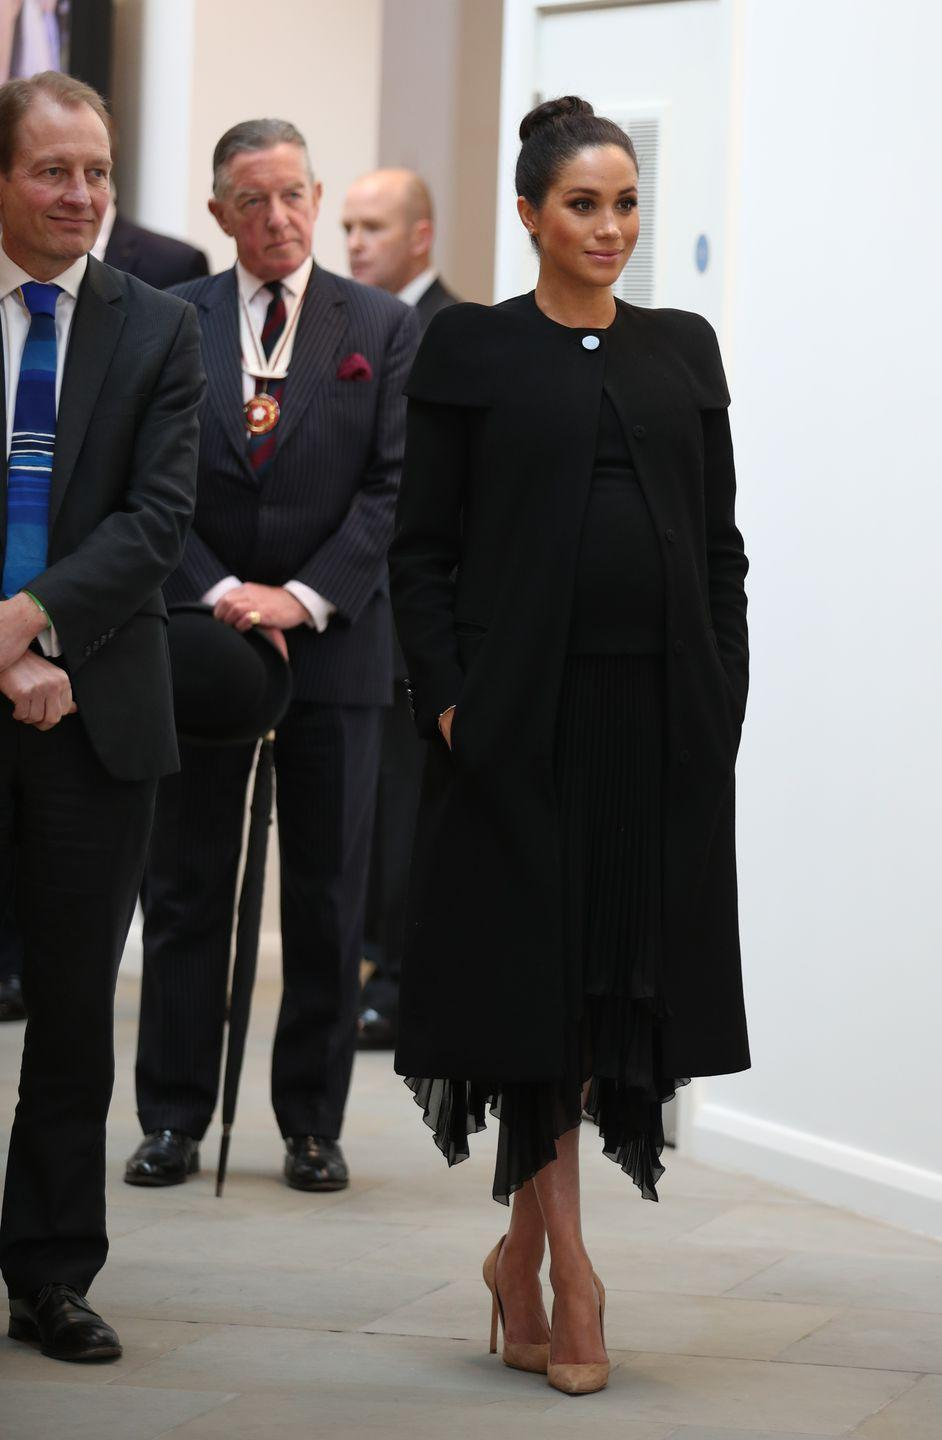 <p>Meghan looked chic in a black Givenchy coat, which she previously wore for the Remembrance Day Service in November, while visiting the Association of Commonwealth Universities. The Duchess completed the look with a black pleated chiffon dress and nude pumps. </p>